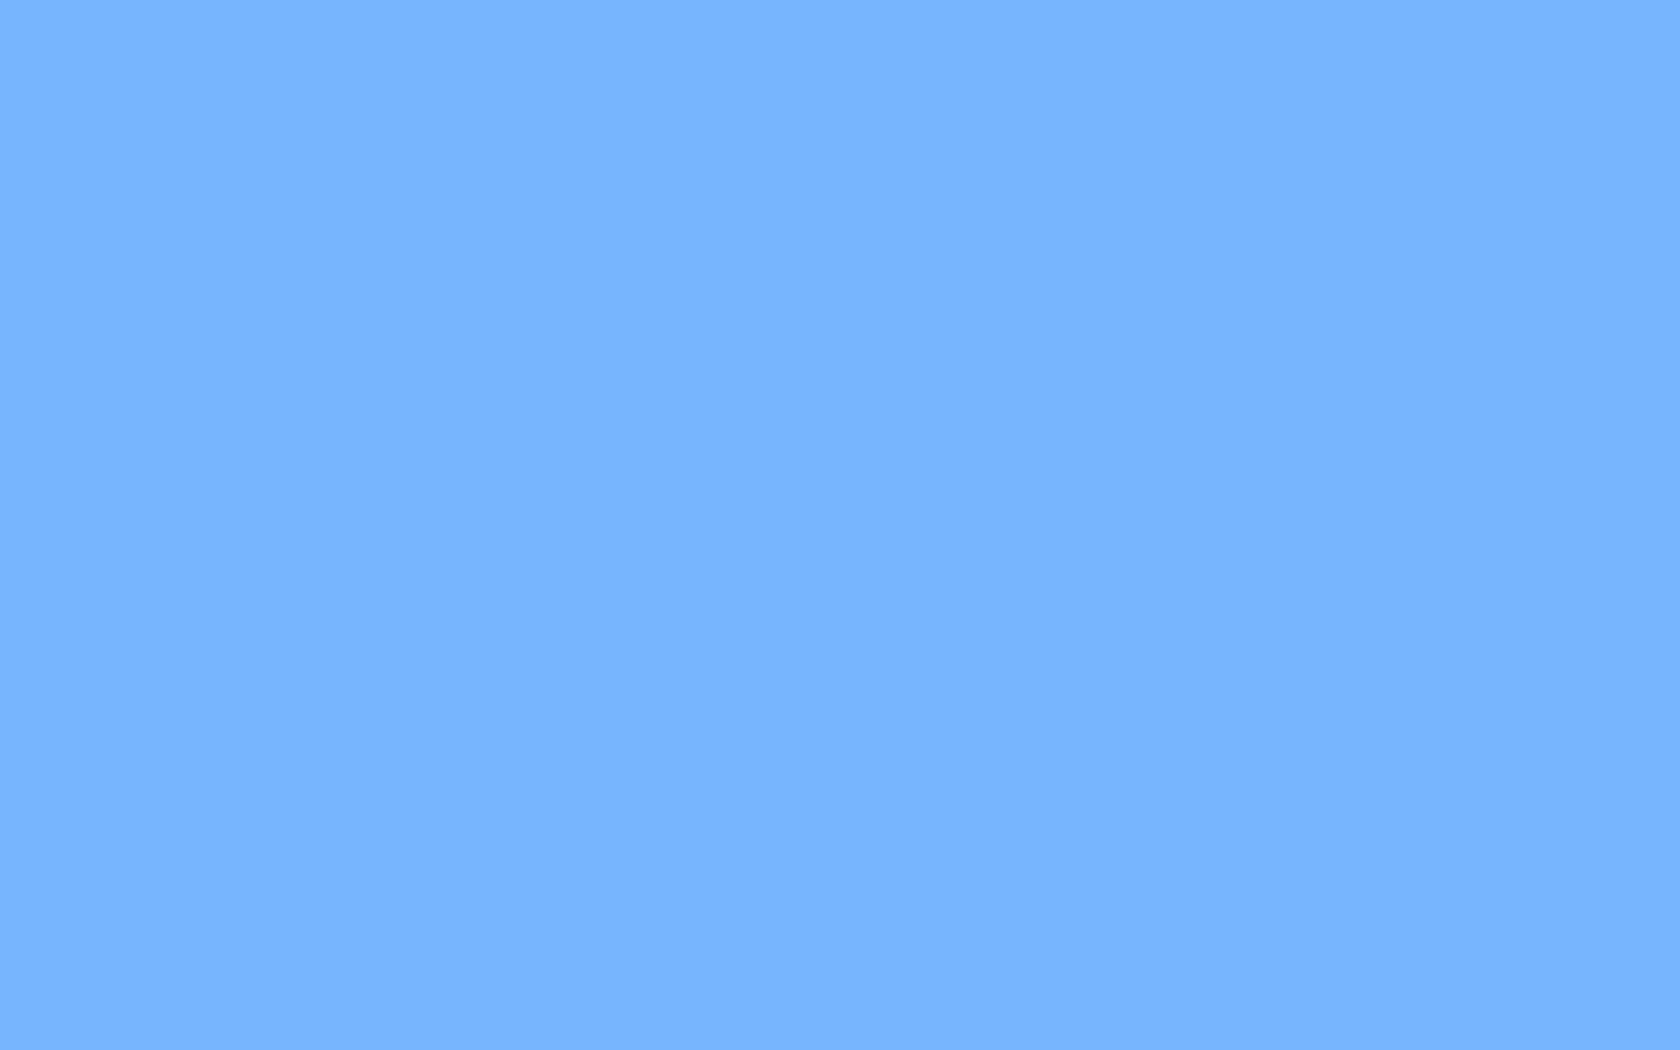 1680x1050 French Sky Blue Solid Color Background